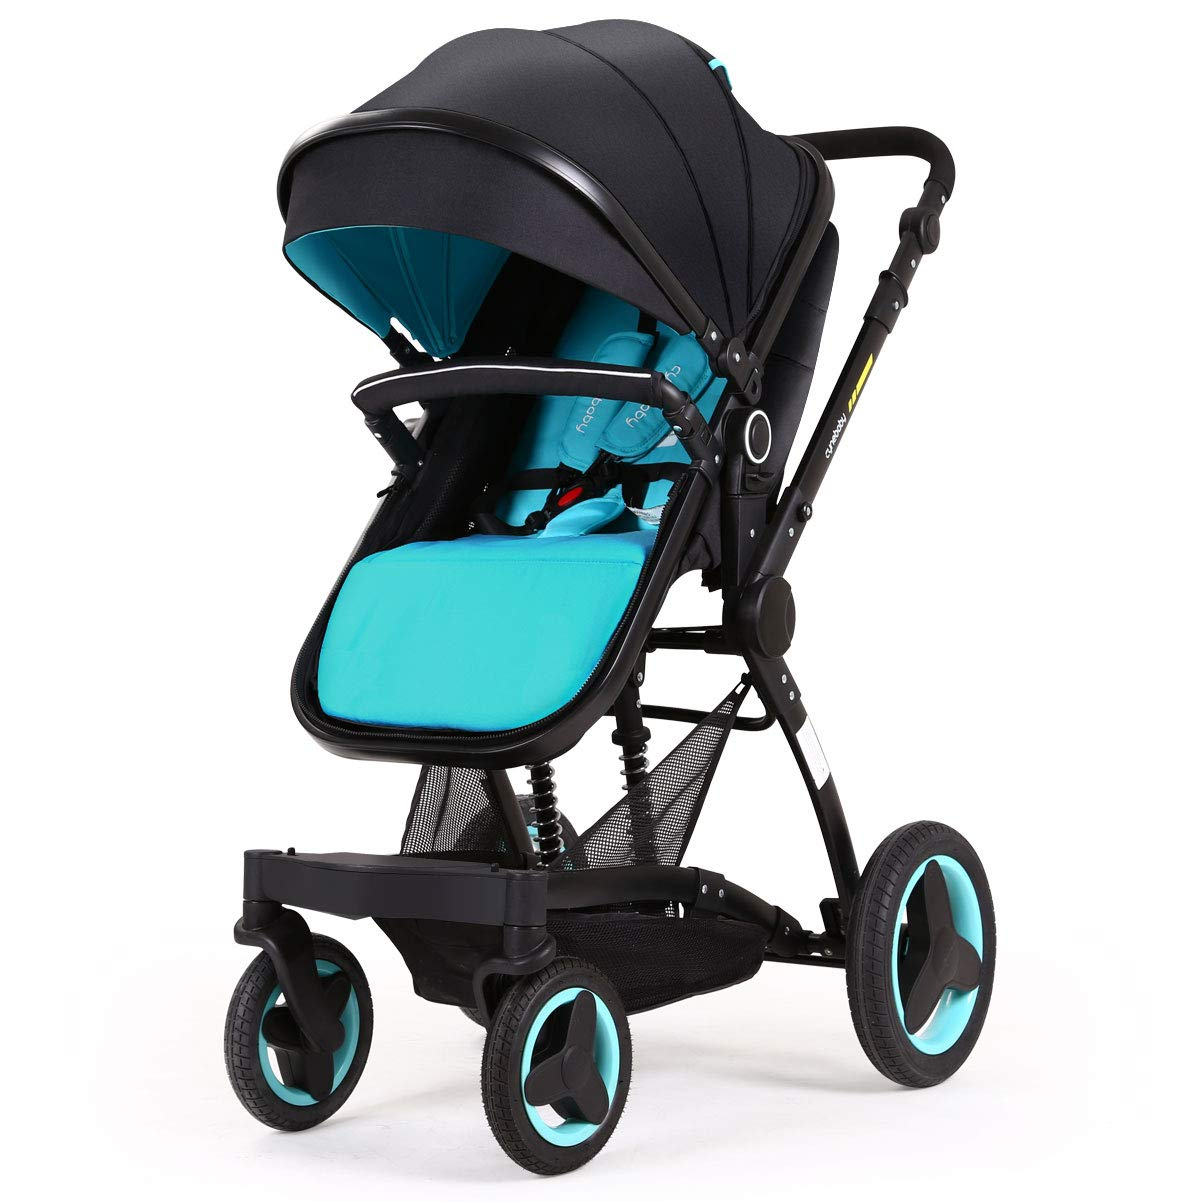 Cynebaby Stroller Bassinet Reversible Pram Strollers Infant All Terrian Baby Carriage City Select Vista Toddler Pushchair for Girl n Boy add Net Cover (Ocean Blue) by cynebaby